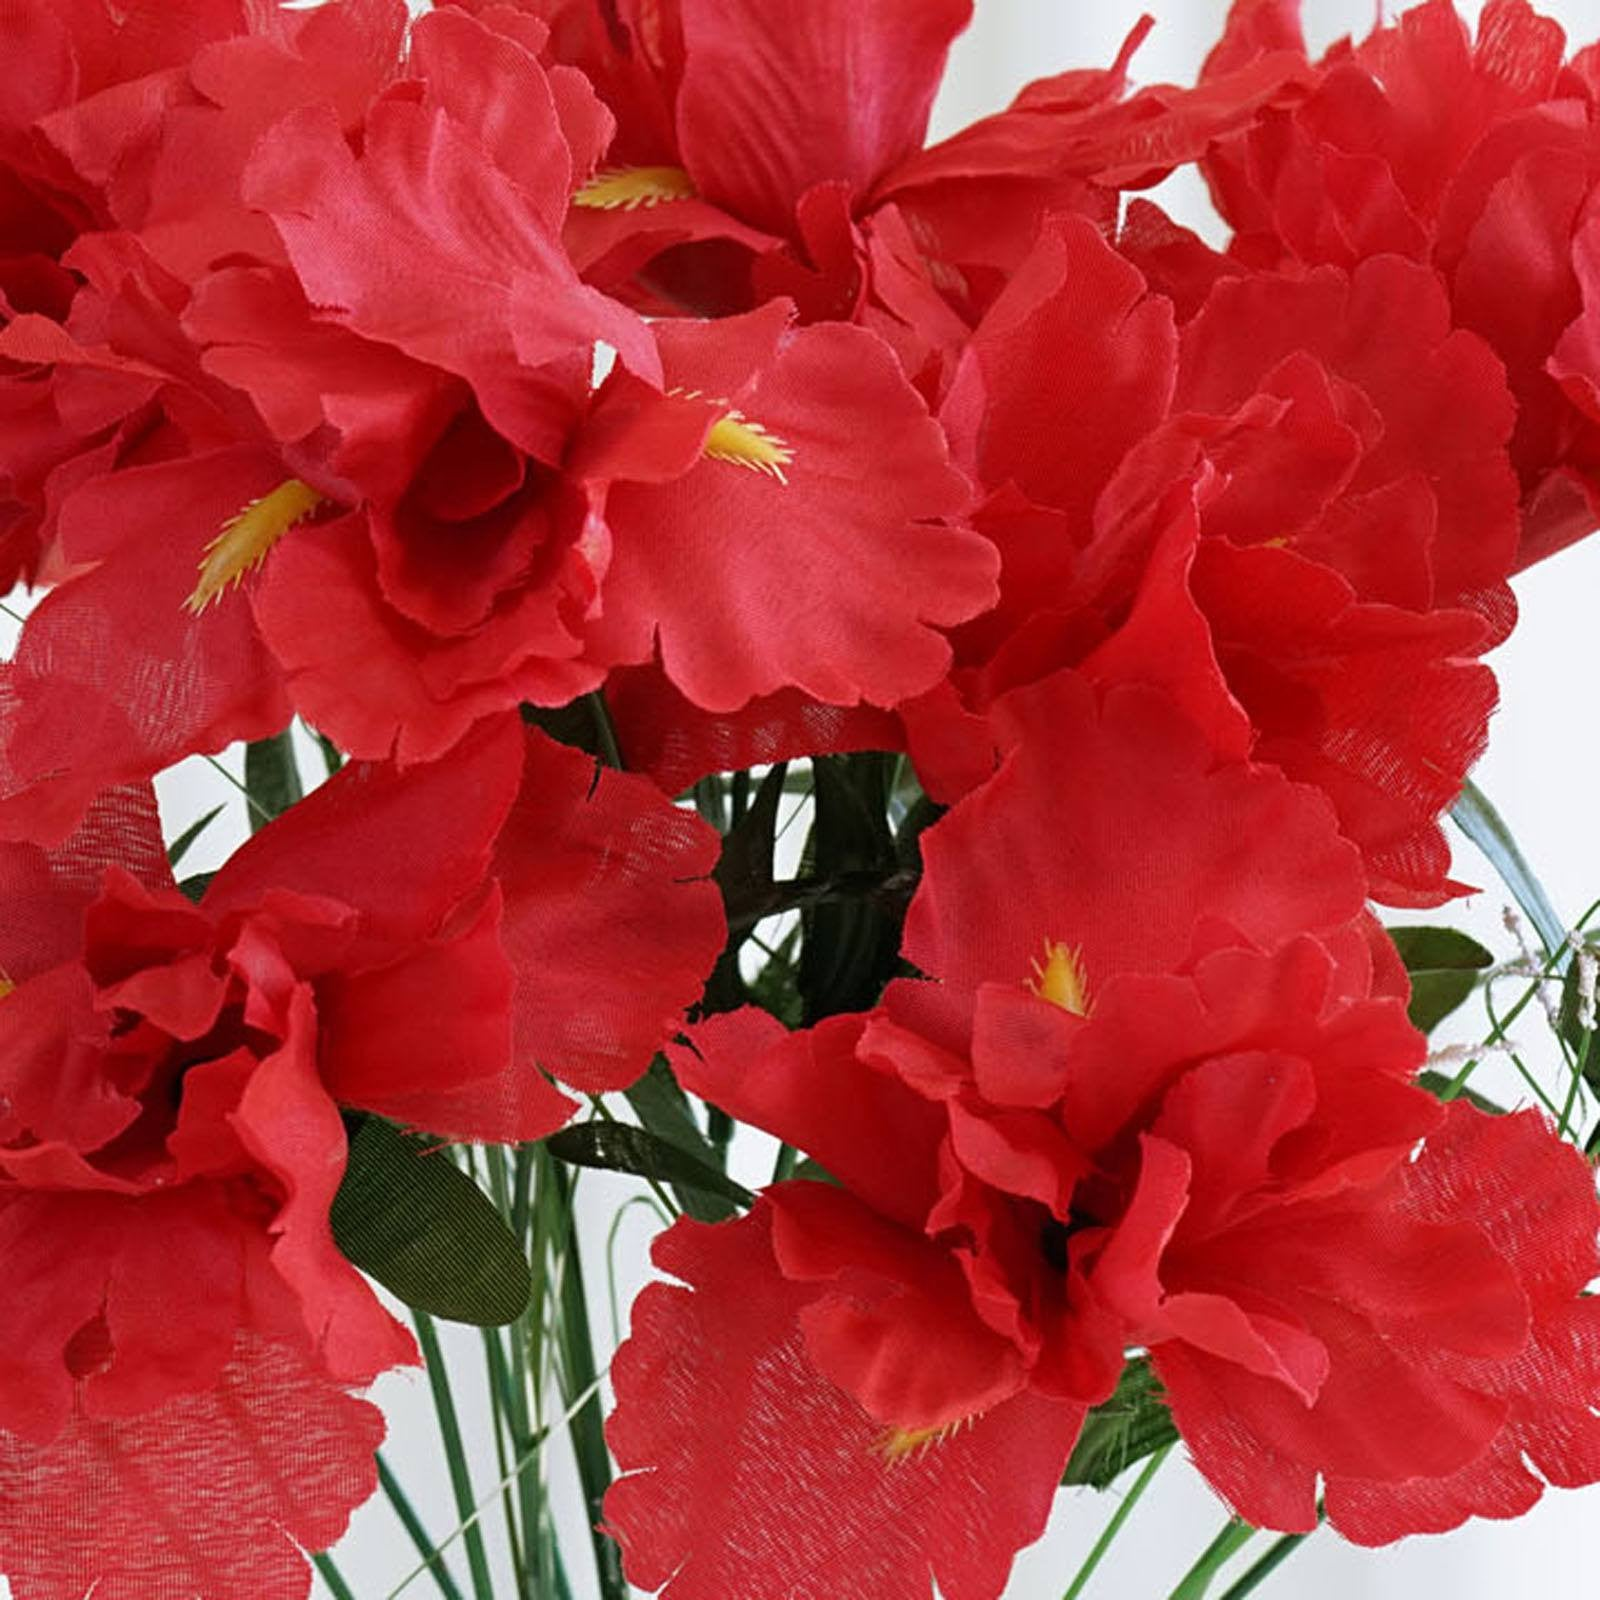 12 Bush 60 Pcs Red Artificial Silk Iris Flowers Tablecloths